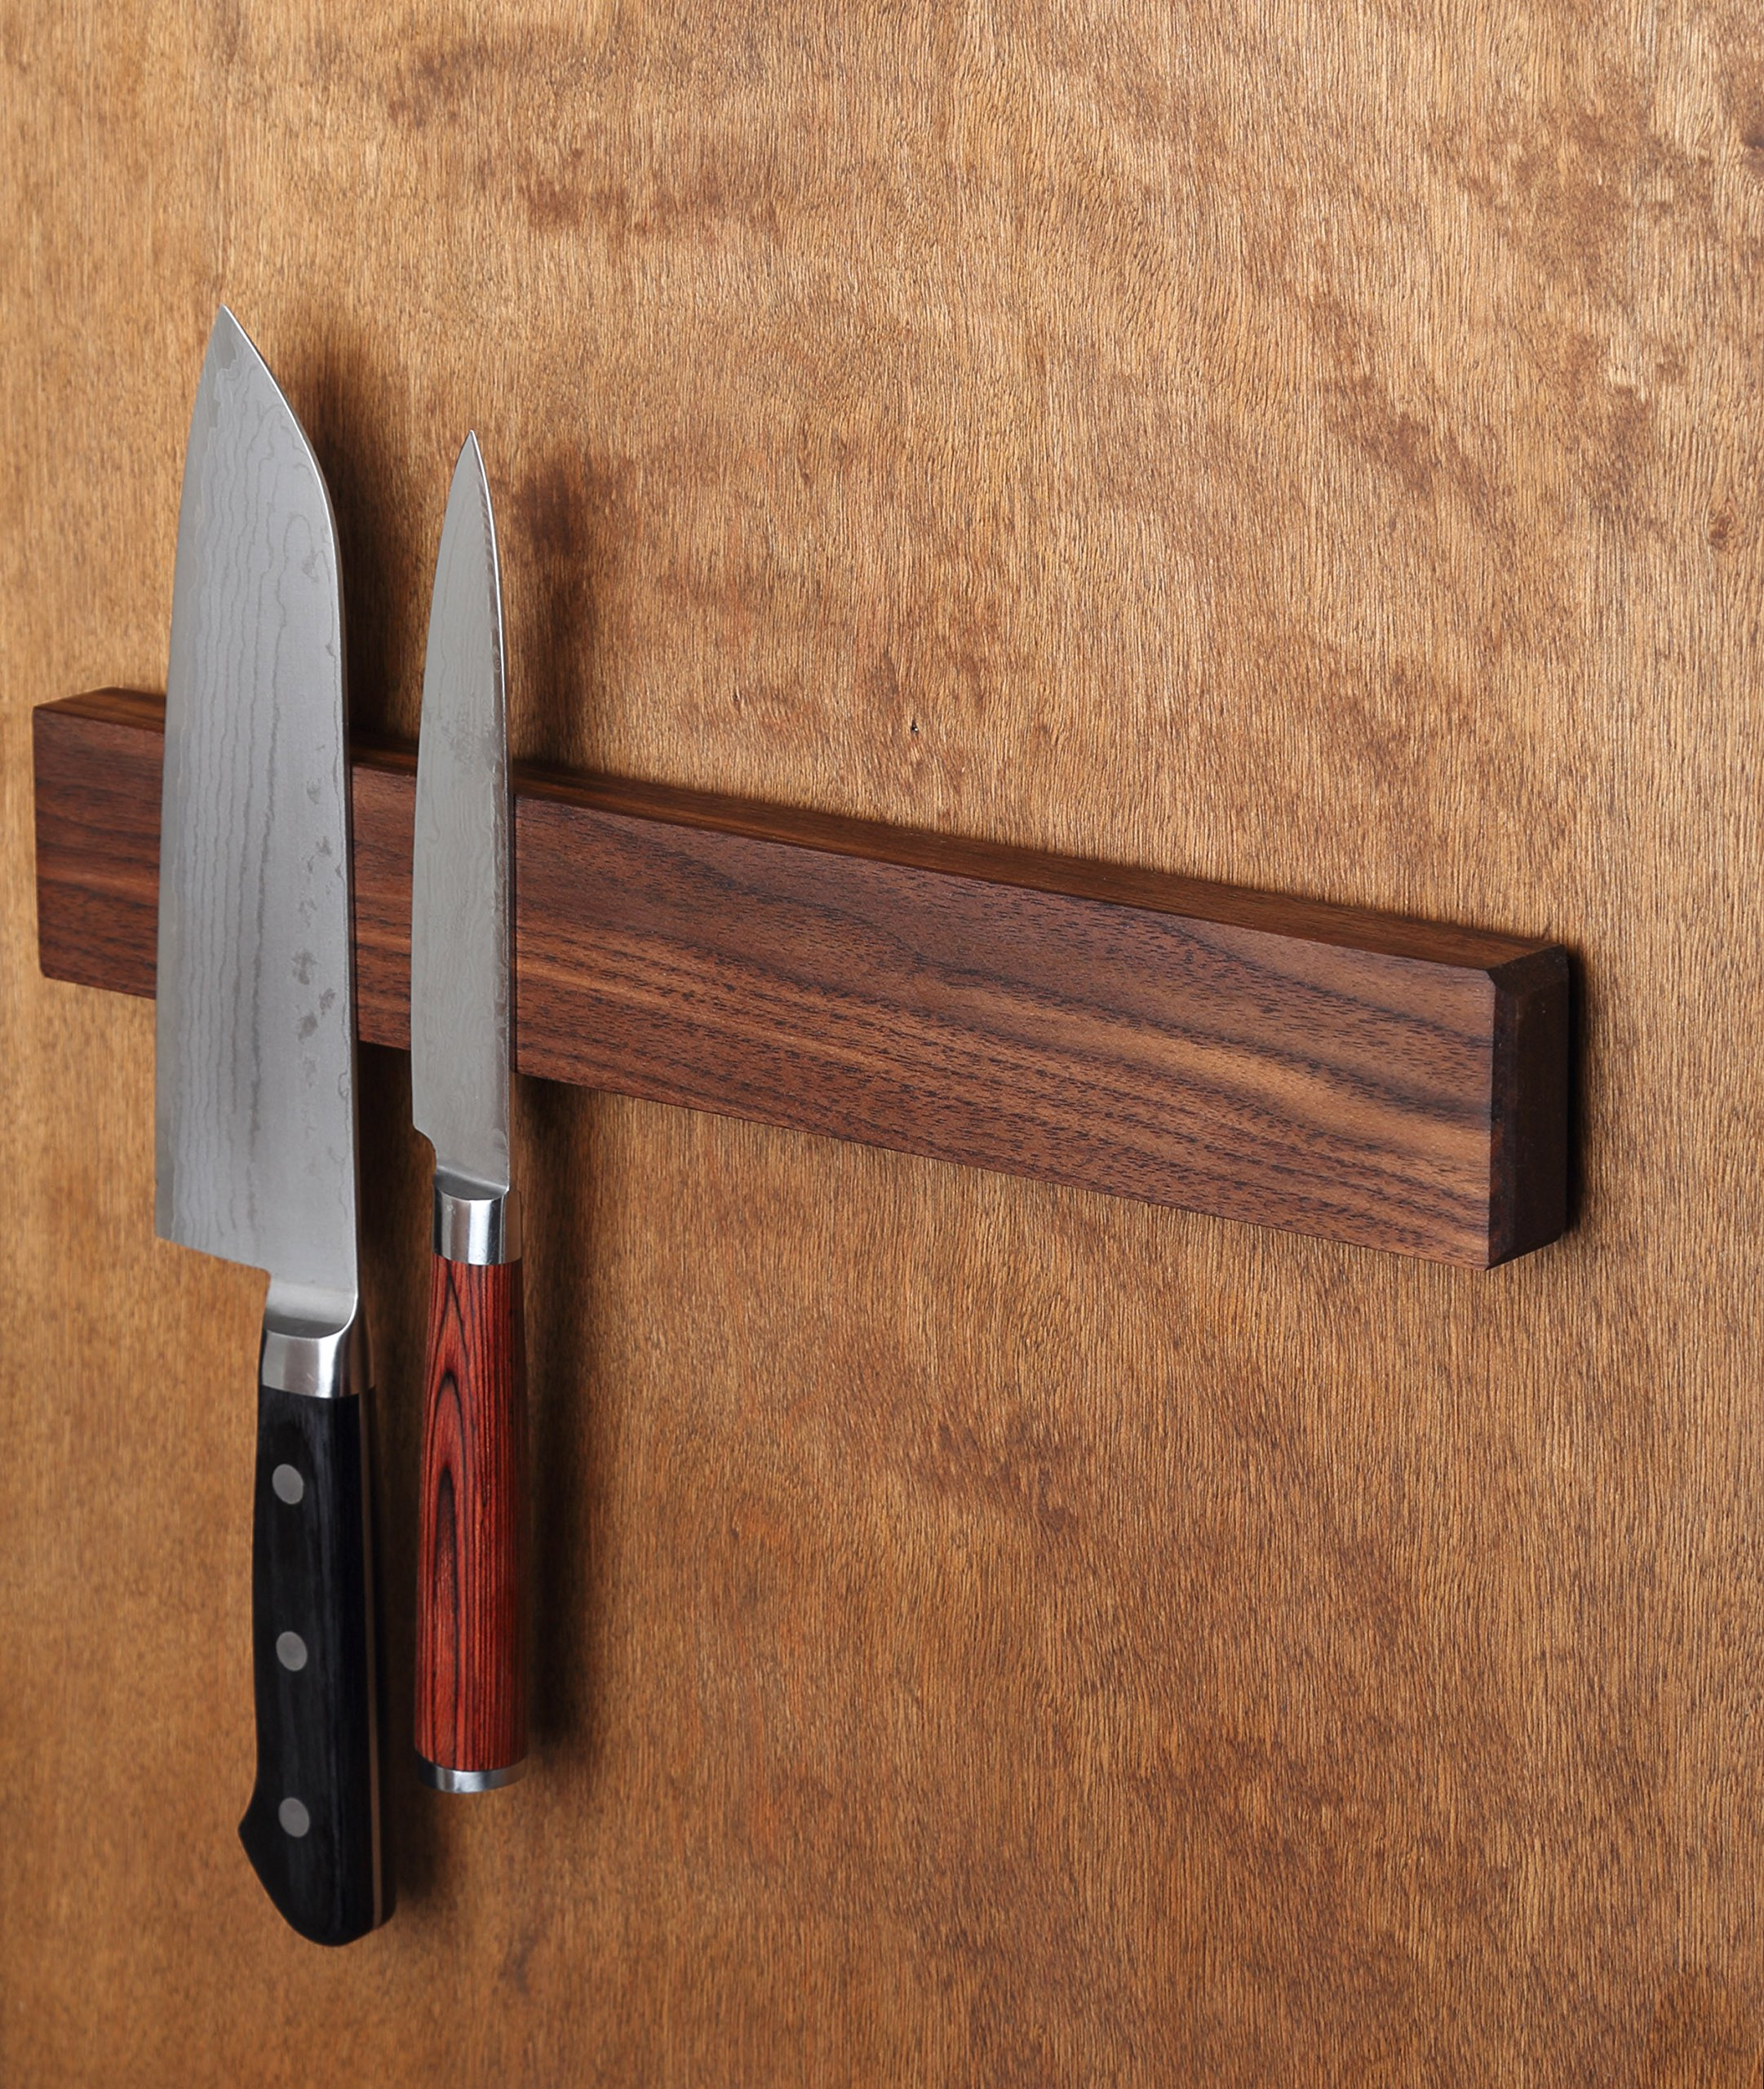 Walnut Magnetic Knife Holder with Multi Purpose Functionality as Knife Magnet, Knife Strip, Magnetic Organizer- Securely Holds Your Knives & Keeps Your Kitchen Organized- Made in USA- 12 Inch by Kurouto Kitchenware (Image #3)